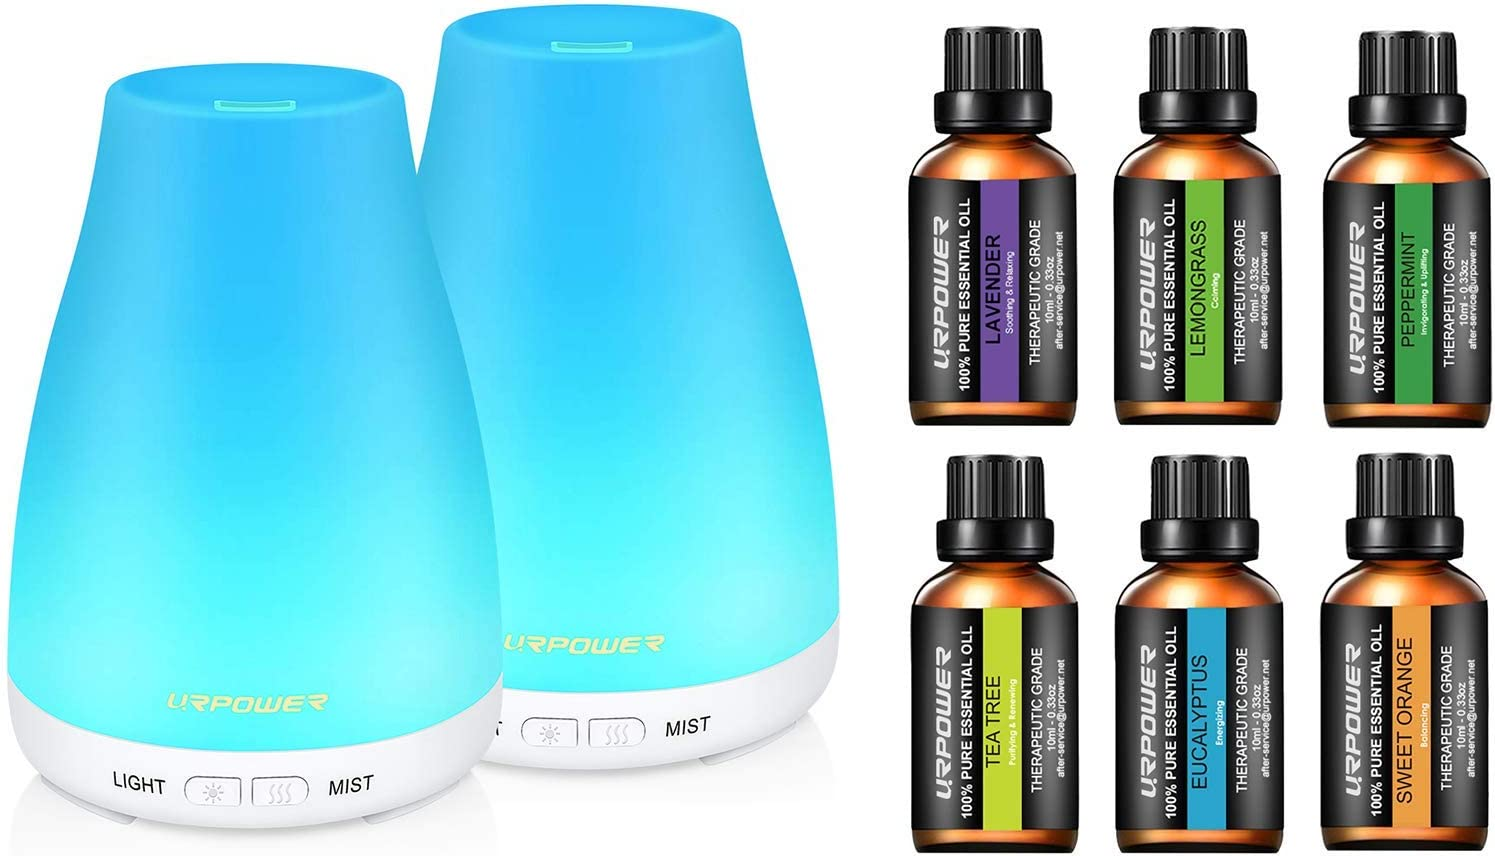 URPOWER Essential Oil Diffuser with Oils, 2 Pack Aromatherapy Diffuser with 6 Bottle 100% Pure Lavender, Peppermint, Sweet Orange, Eucalyptus, Tea Tree, Lemongrass Essential Oil Set 10ml/Each